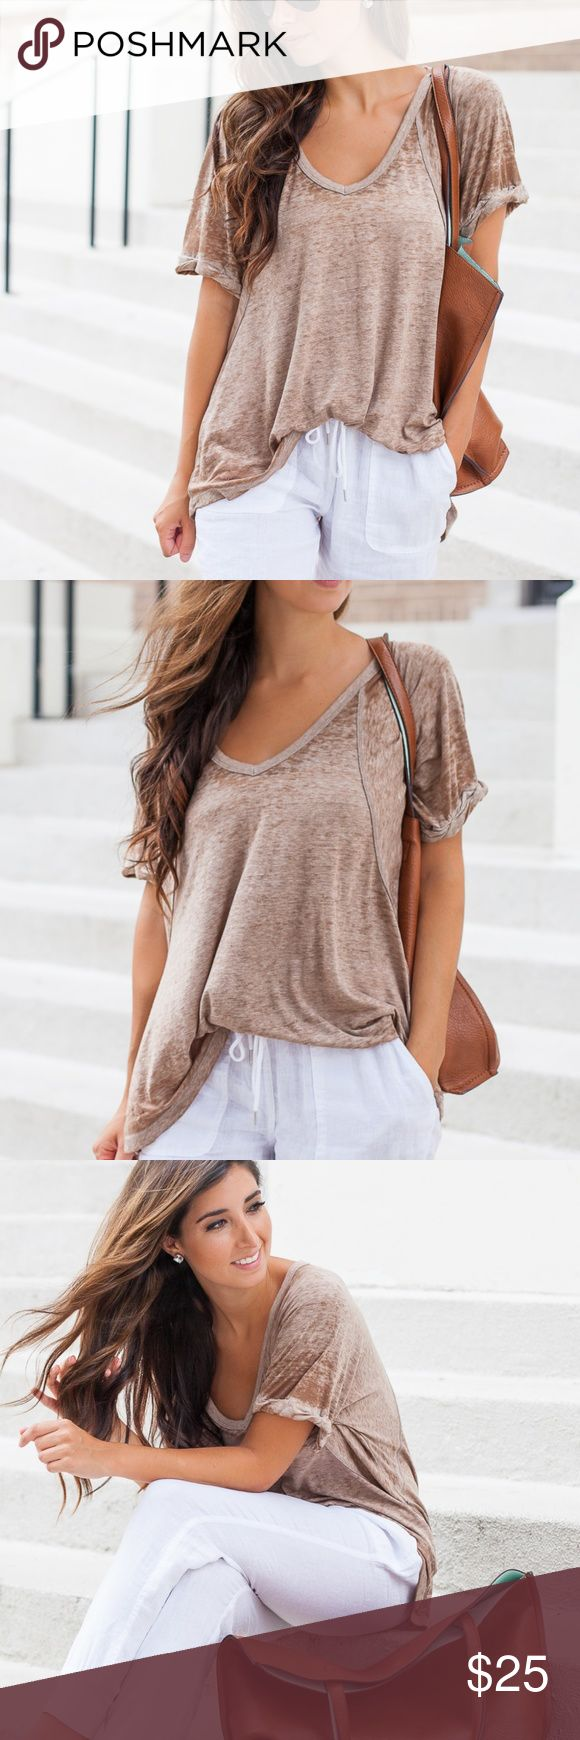 Free People 'Free Fallin' Tee in Driftwood Sz XS New twist on an old Free People fave, this tee features the same slouchy, oversized fit but it's in a so-soft burnout jersey. It's a great light brown color called 'Driftwood'. Ribbed V-Neck with rolled short sleeves. Subtle Hi-Lo hem. Purchased new from a Free People store and worn only a few times. Like new condition. Free People Tops Tees - Short Sleeve